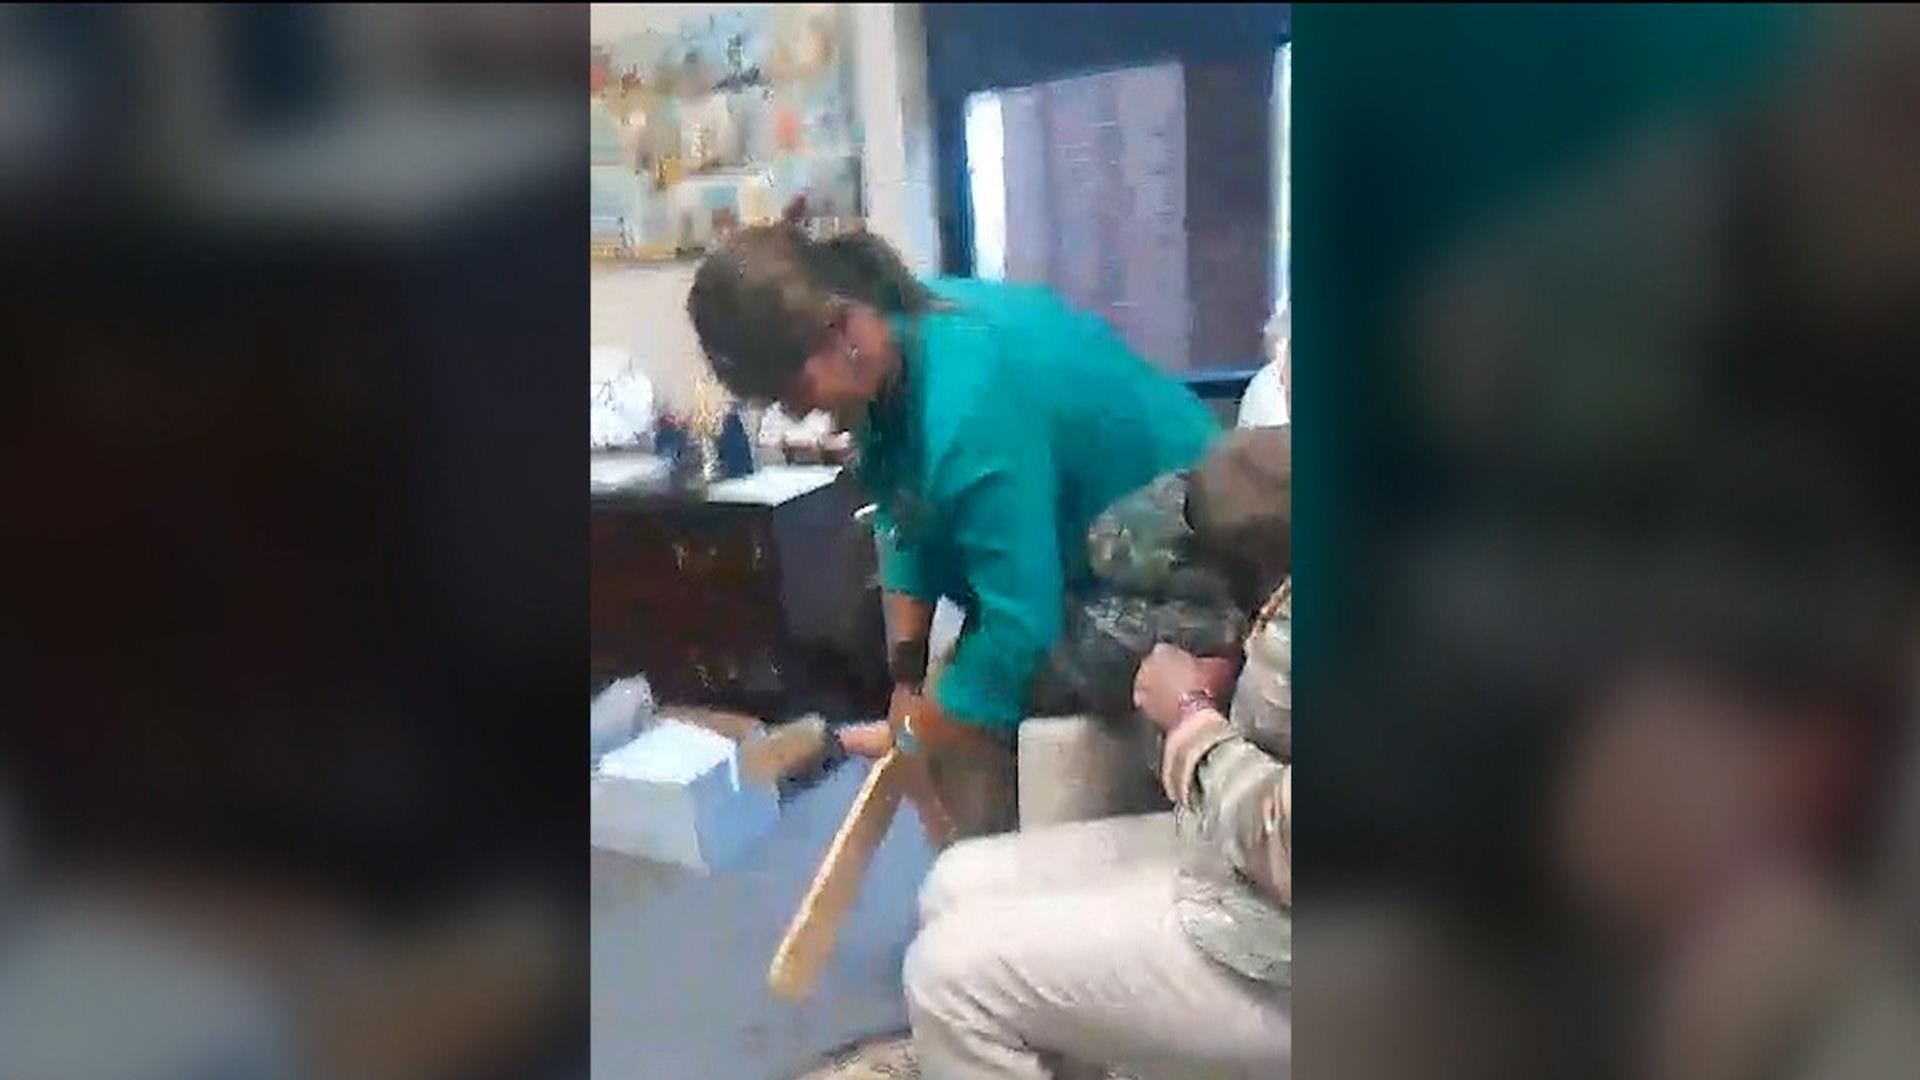 Video Paddling Of 5 Year Old By Principal Reignites